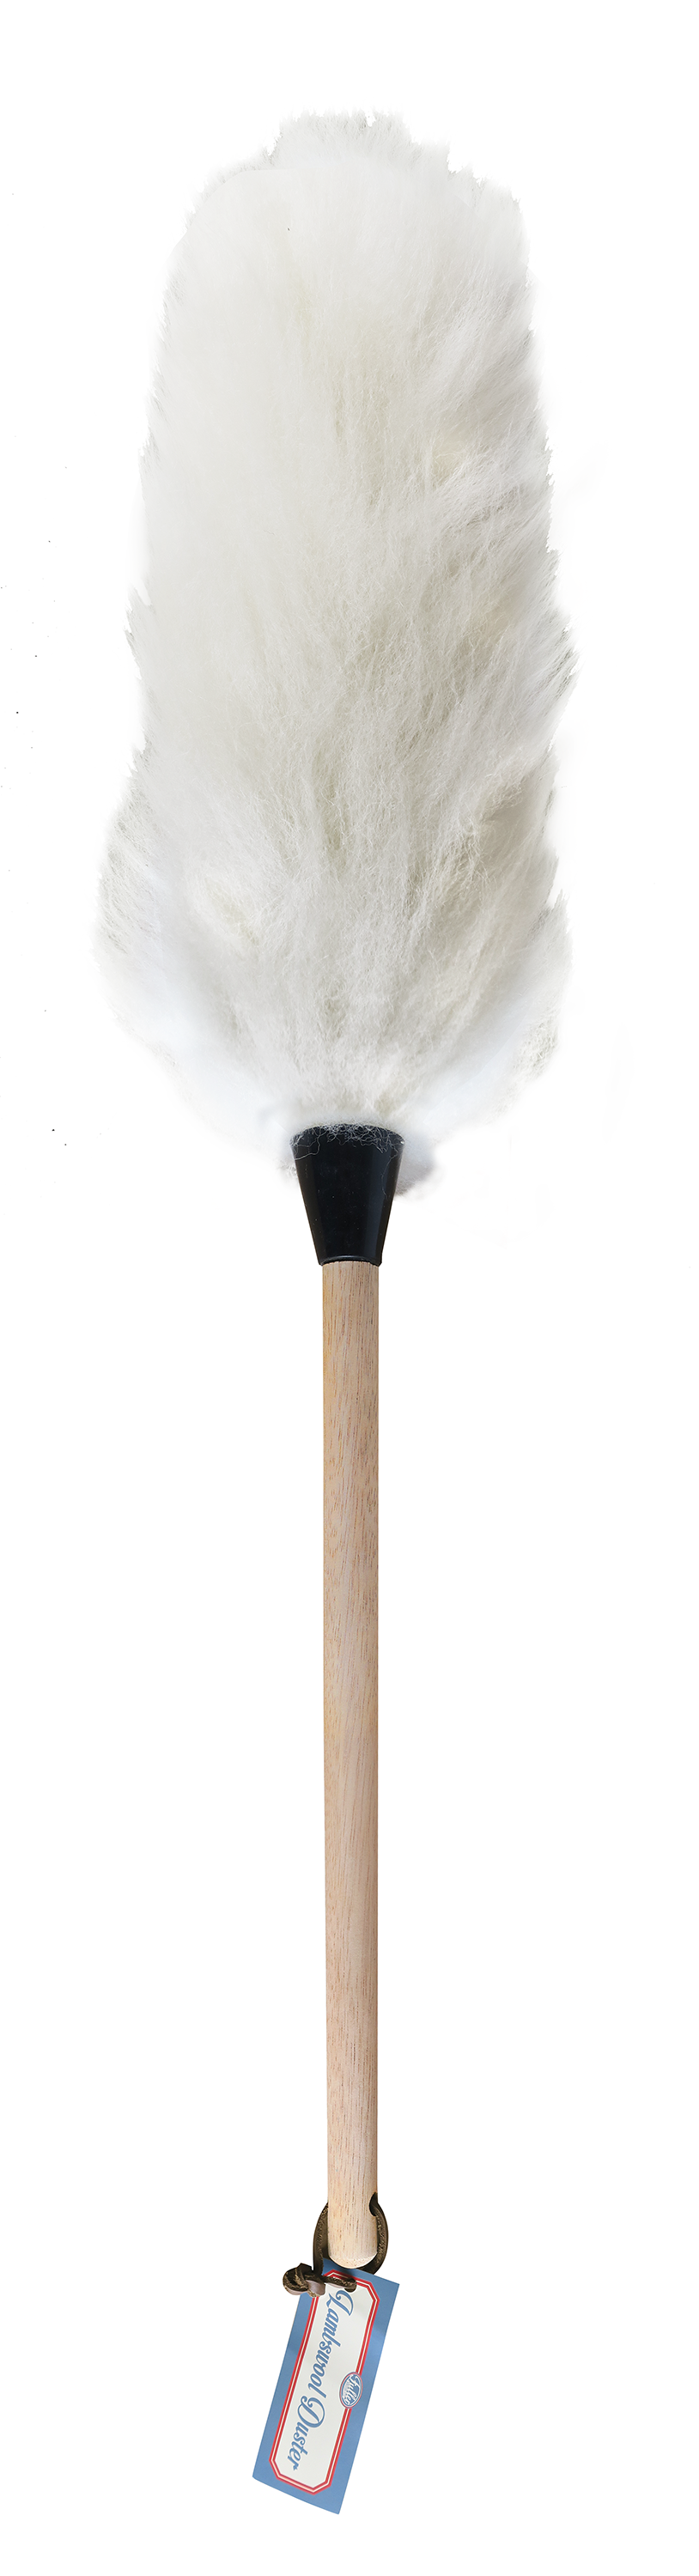 Lambswool Australian Lambswool Duster  w/ Long Wooden Handle